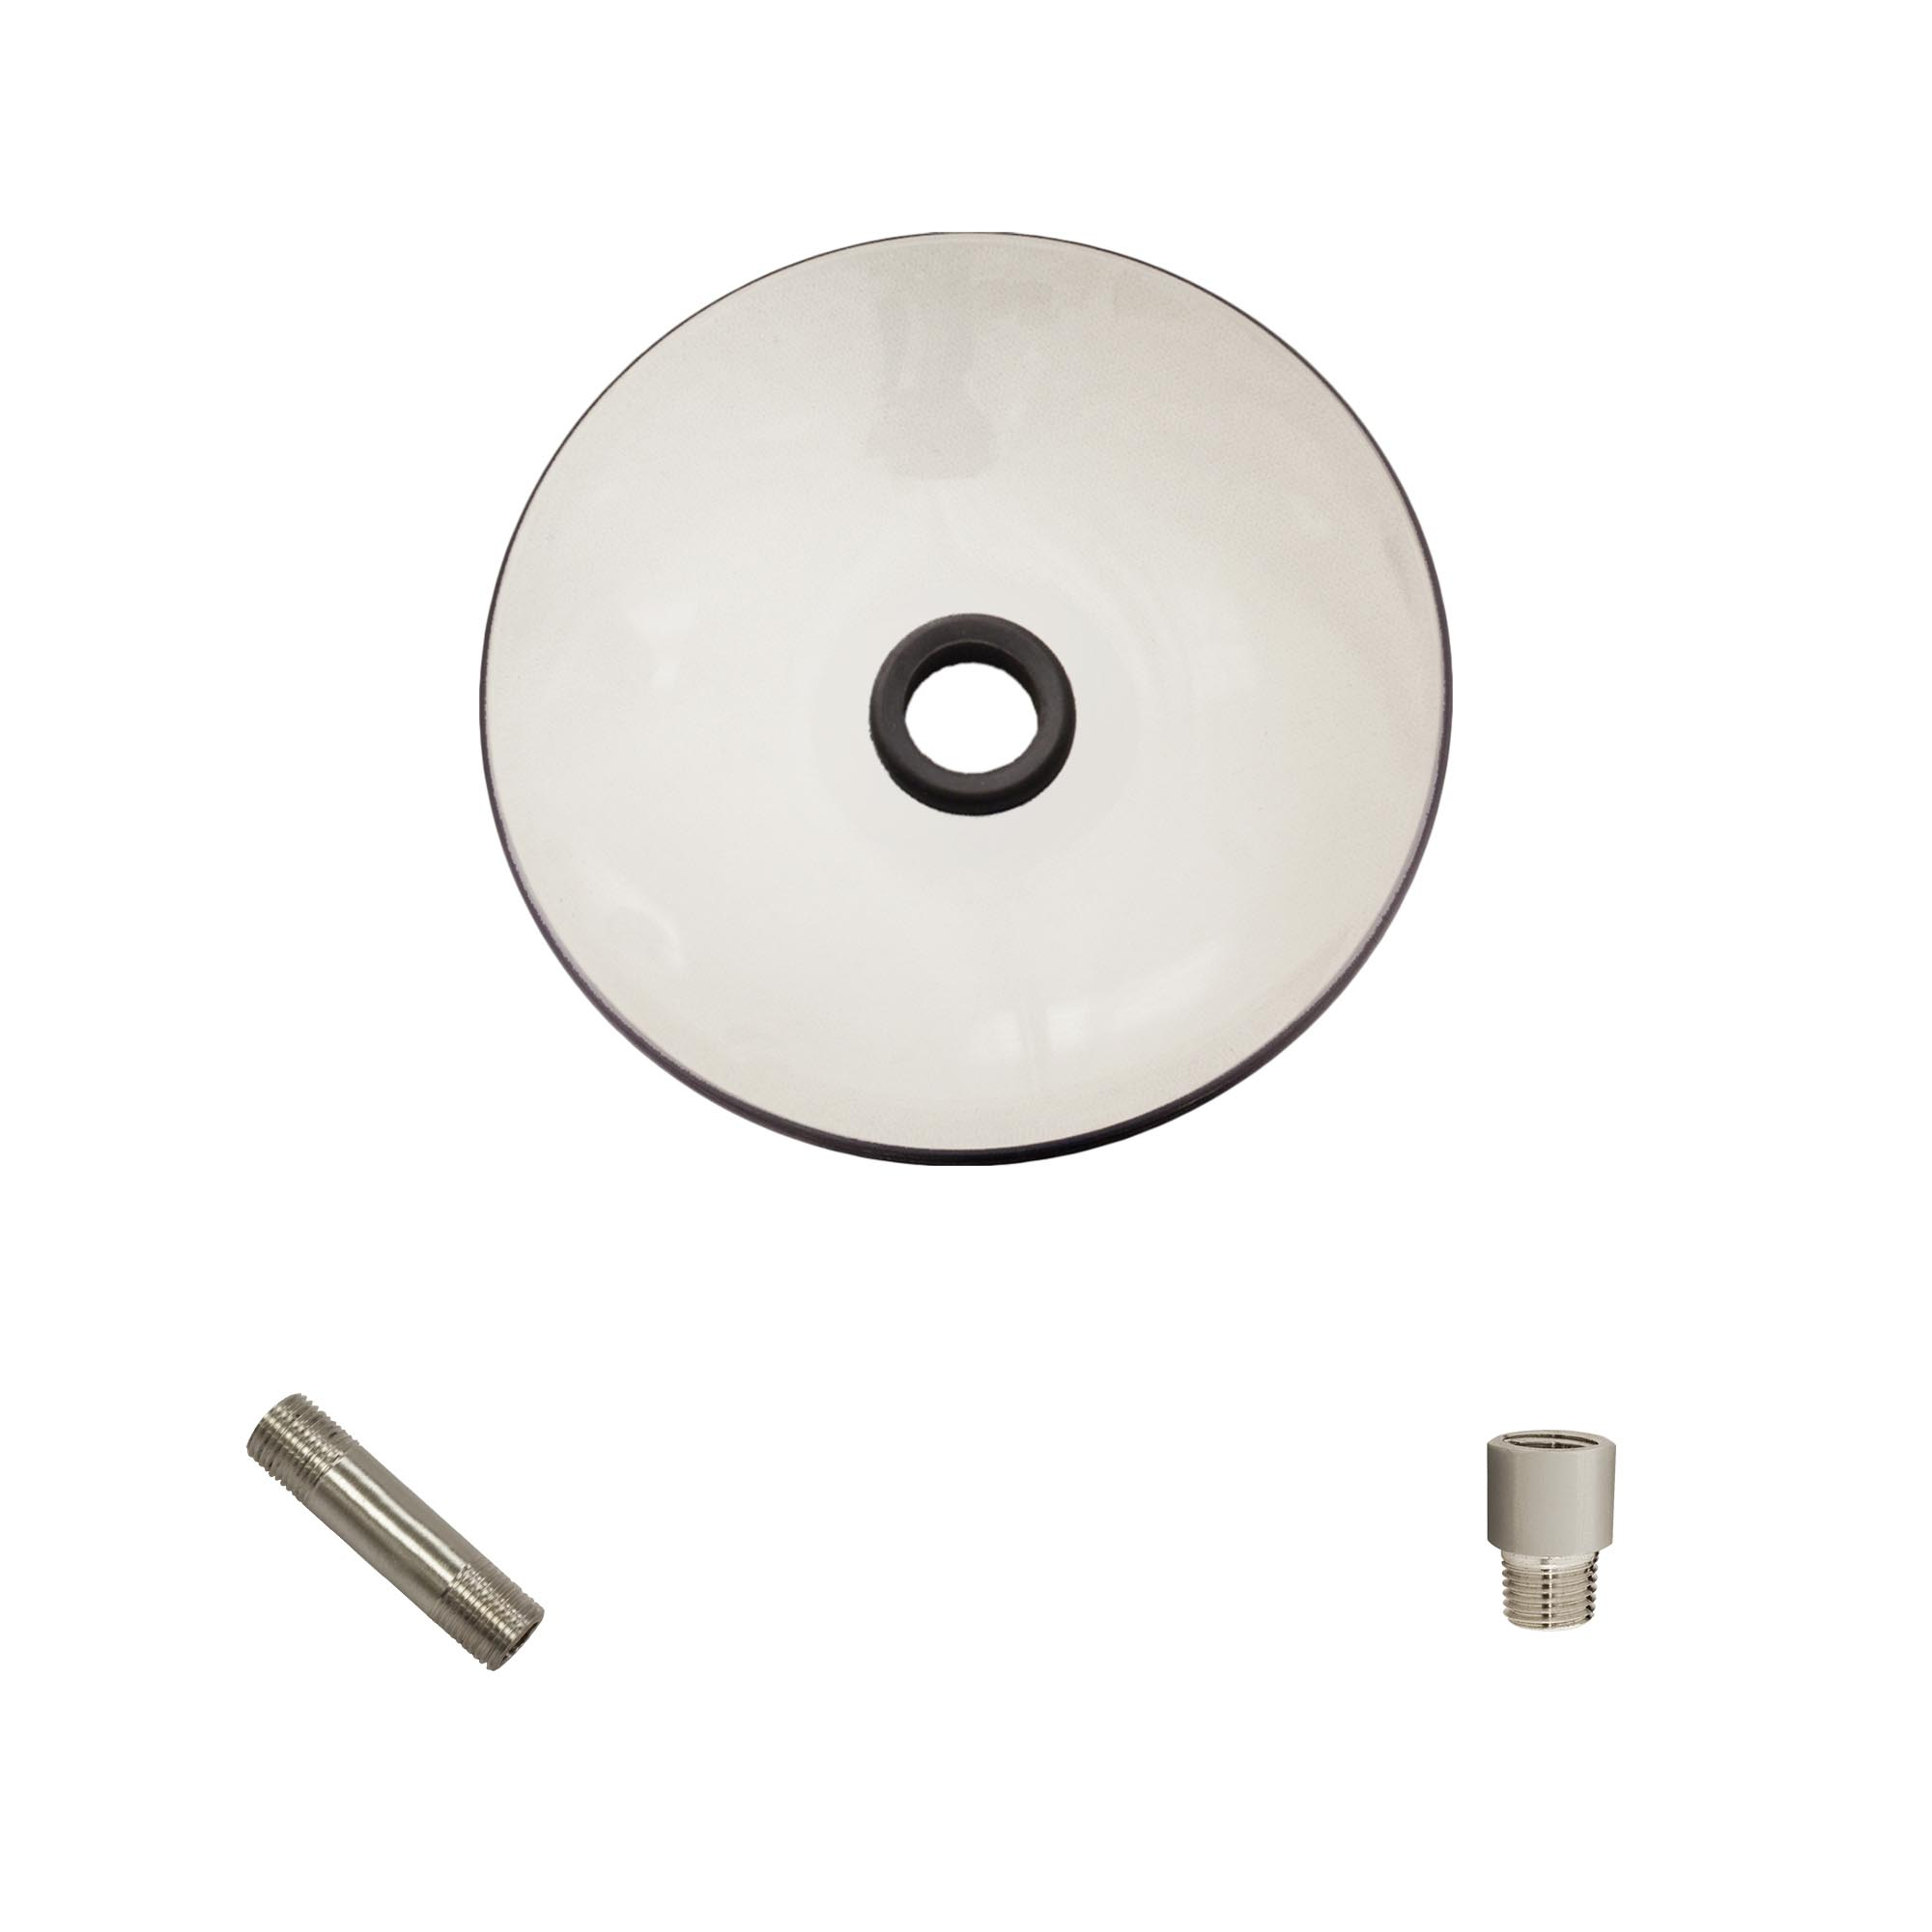 Model 901234 Retrofit Kit for Chip Shield for Safety Air Guns with 3/4 NPT ext